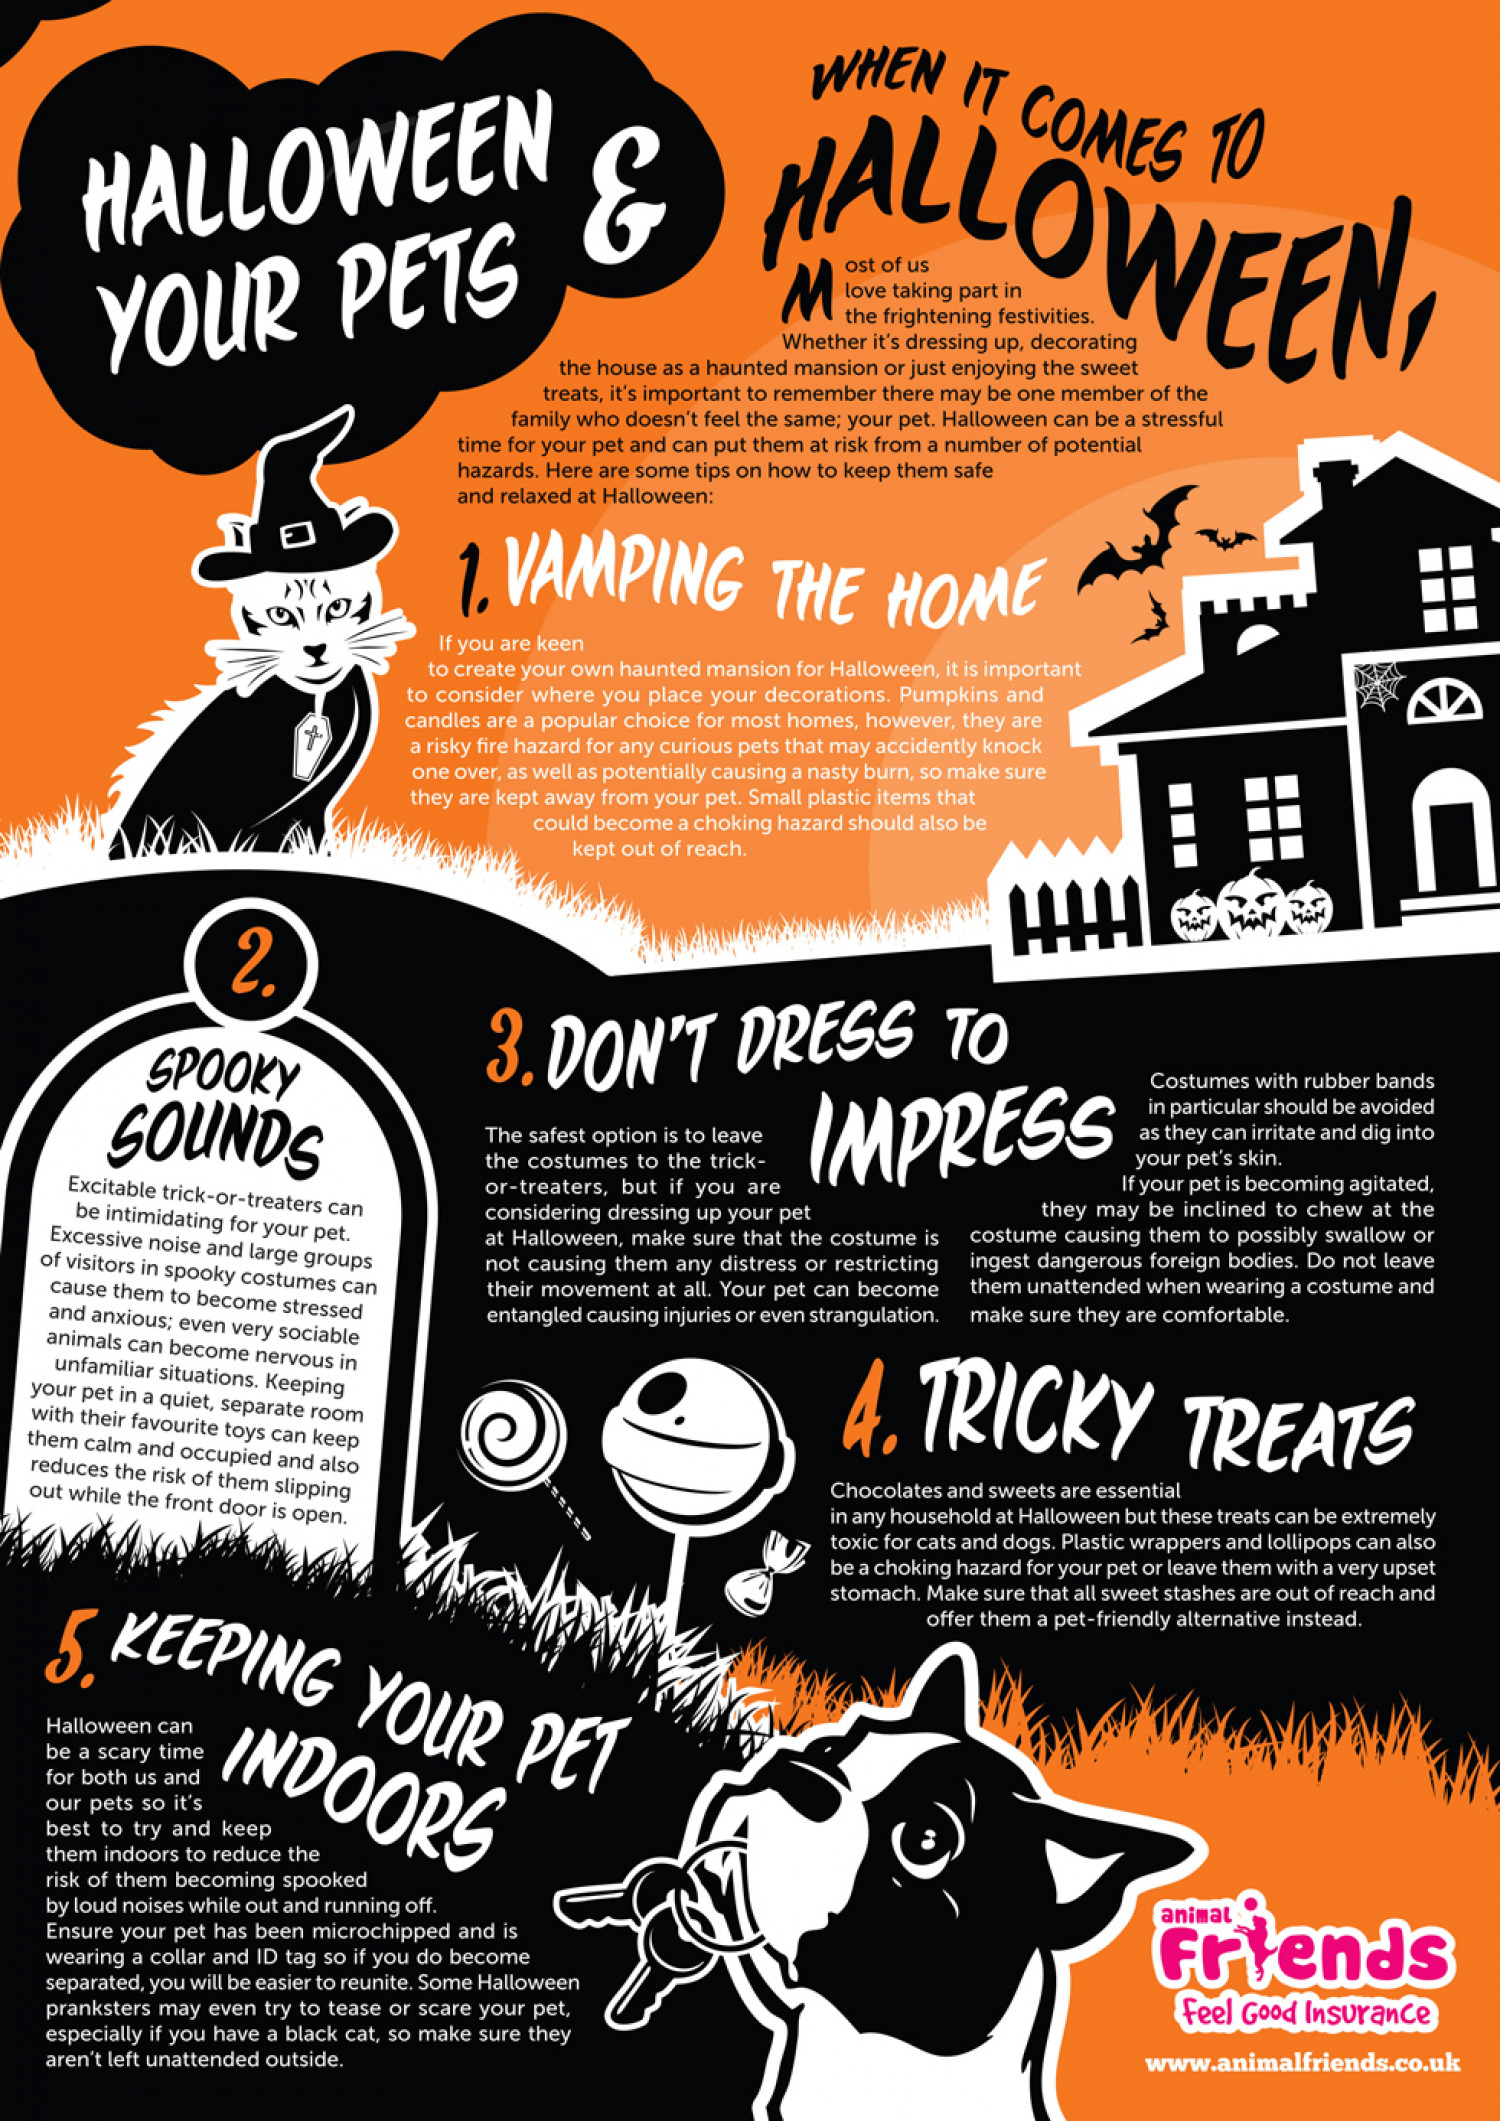 Keeping Your Pet Safe at Halloween Infographic